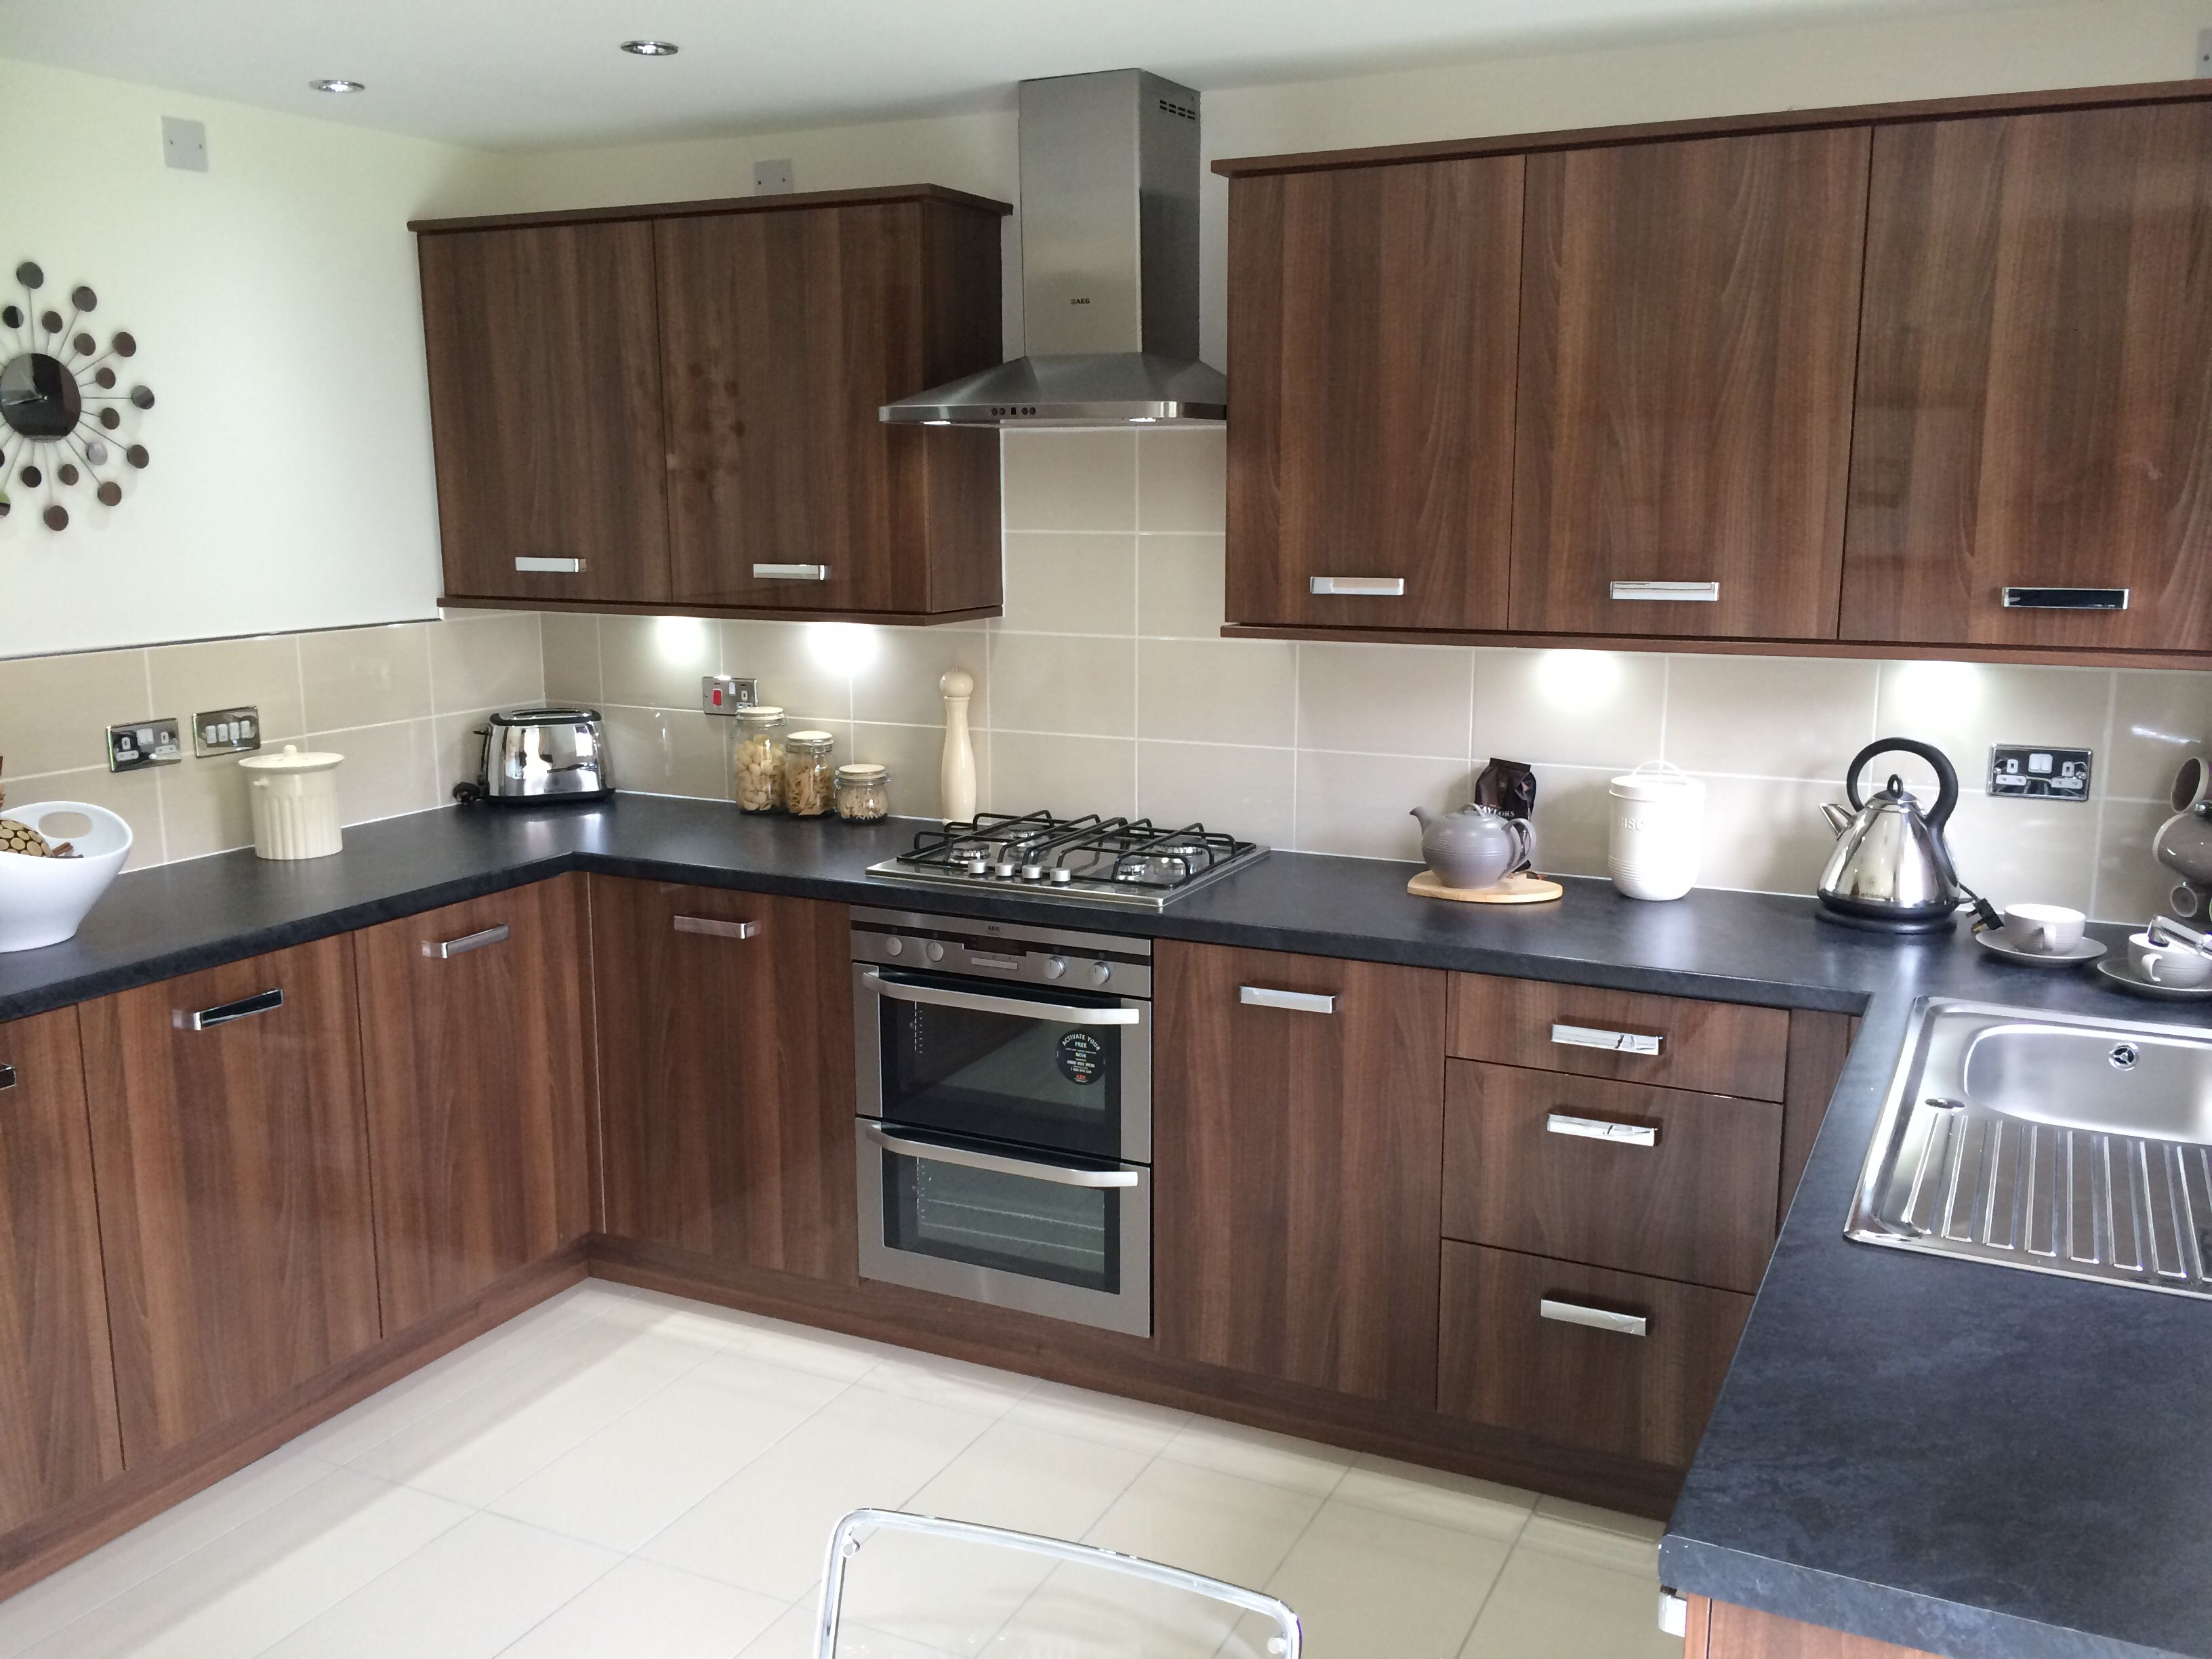 Newly fitted kitchen East Kilbride | Fitted kitchen ...